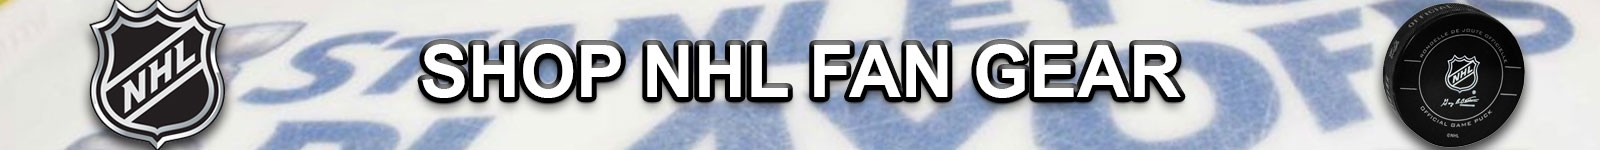 nhl-league-banner.jpg